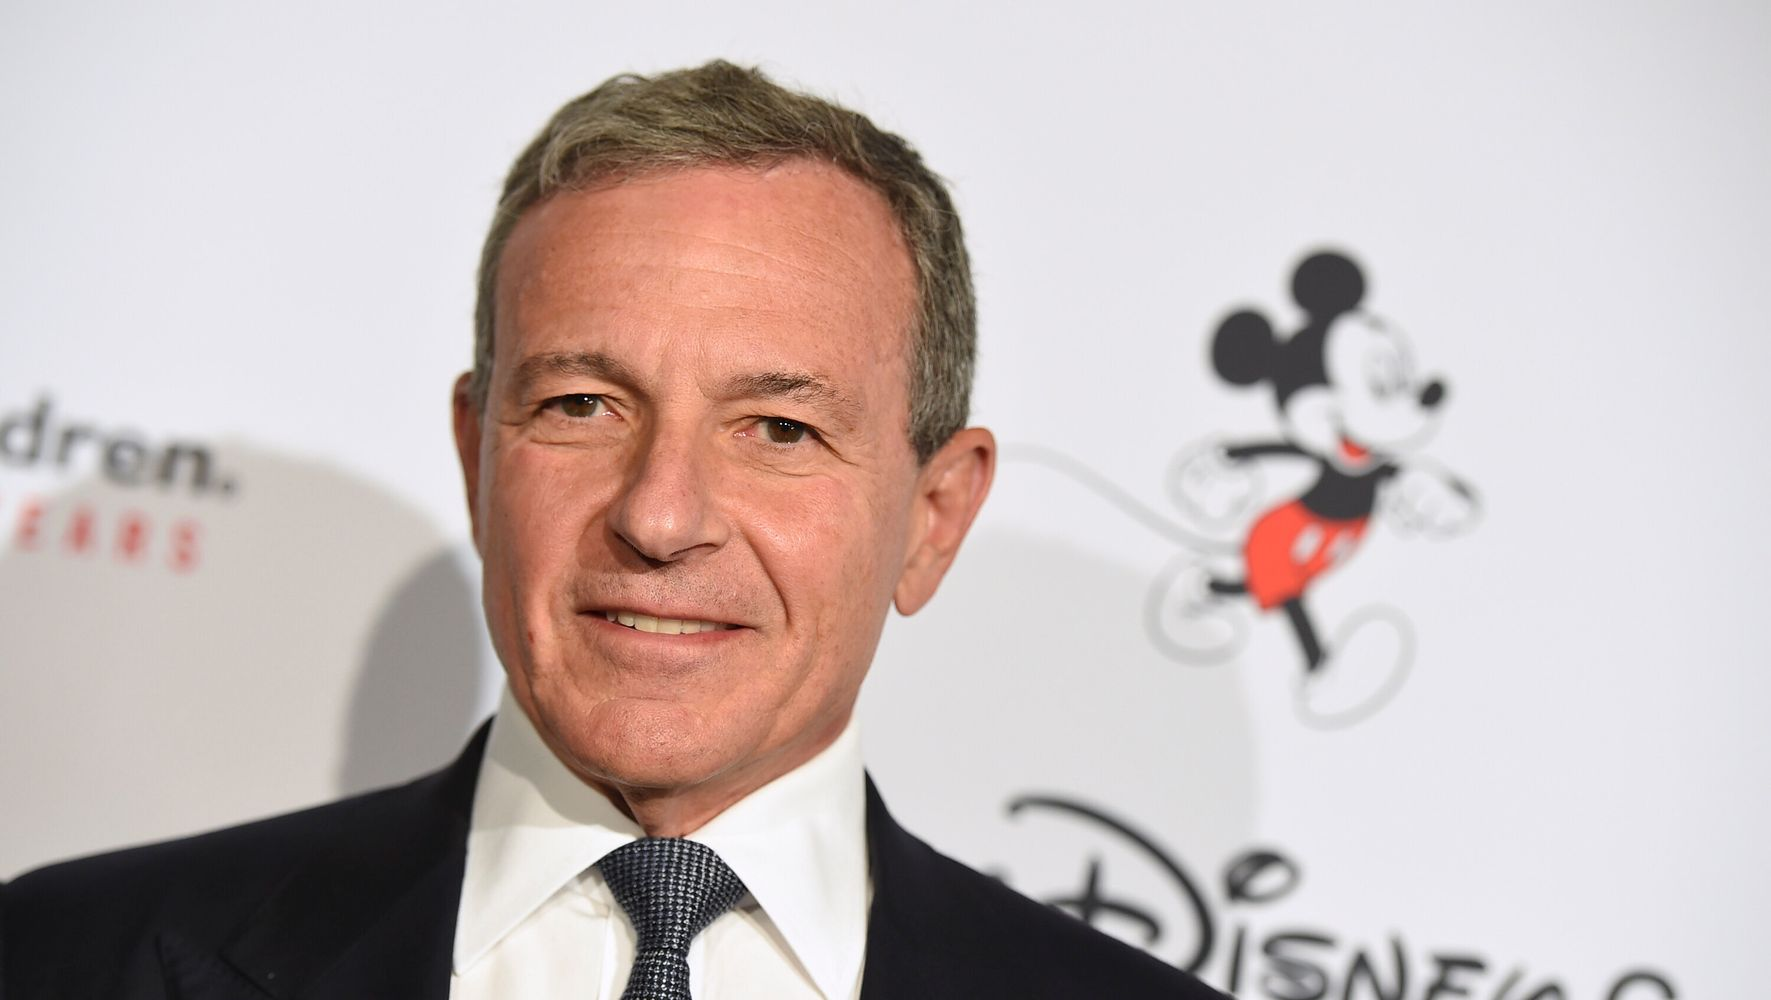 Westlake Legal Group 5e5590f02300002d0b39c3fa Mouse House Shakeup! Disney CEO Bob Iger Steps Down